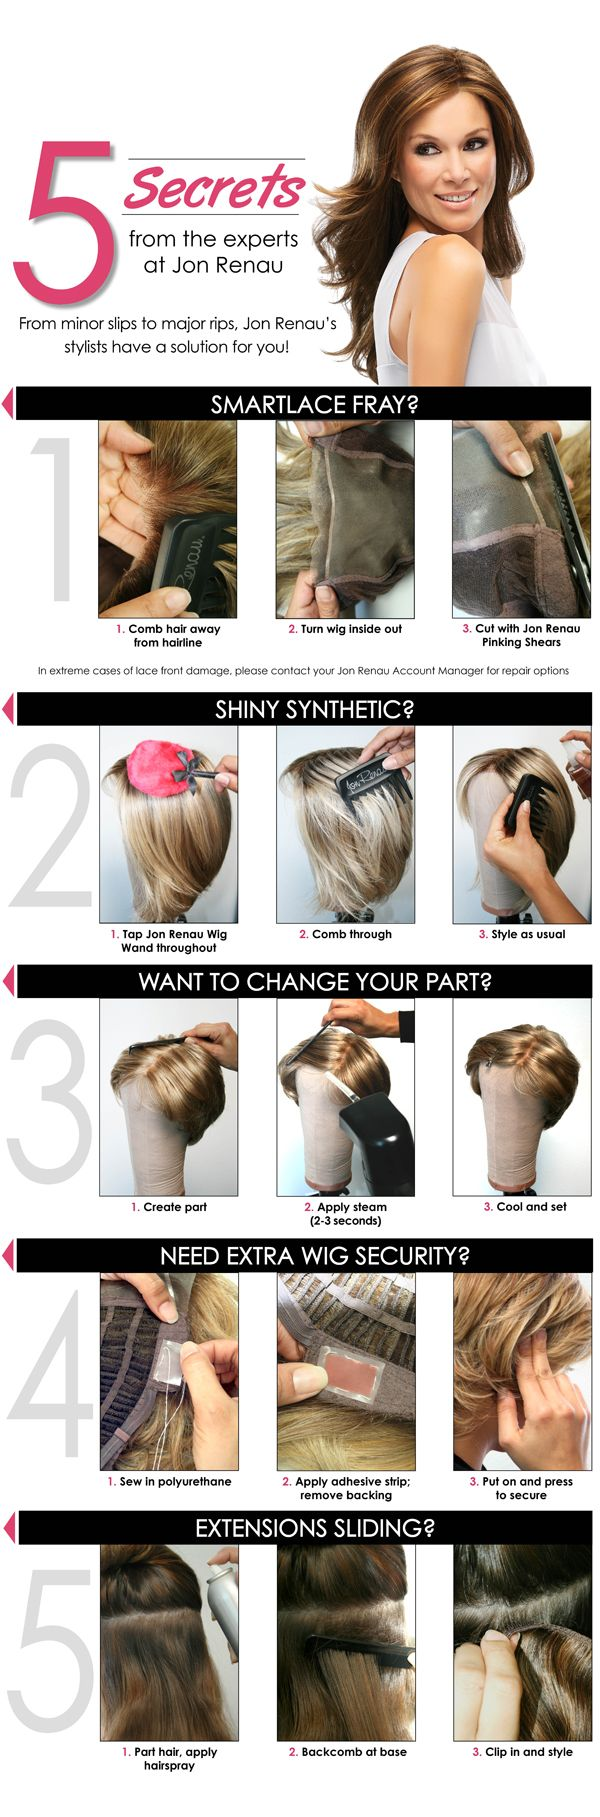 Best 25 synthetic hair extensions ideas on pinterest curly how to care a smart lace fray reduce the shine on a synthetic hair wig pmusecretfo Image collections